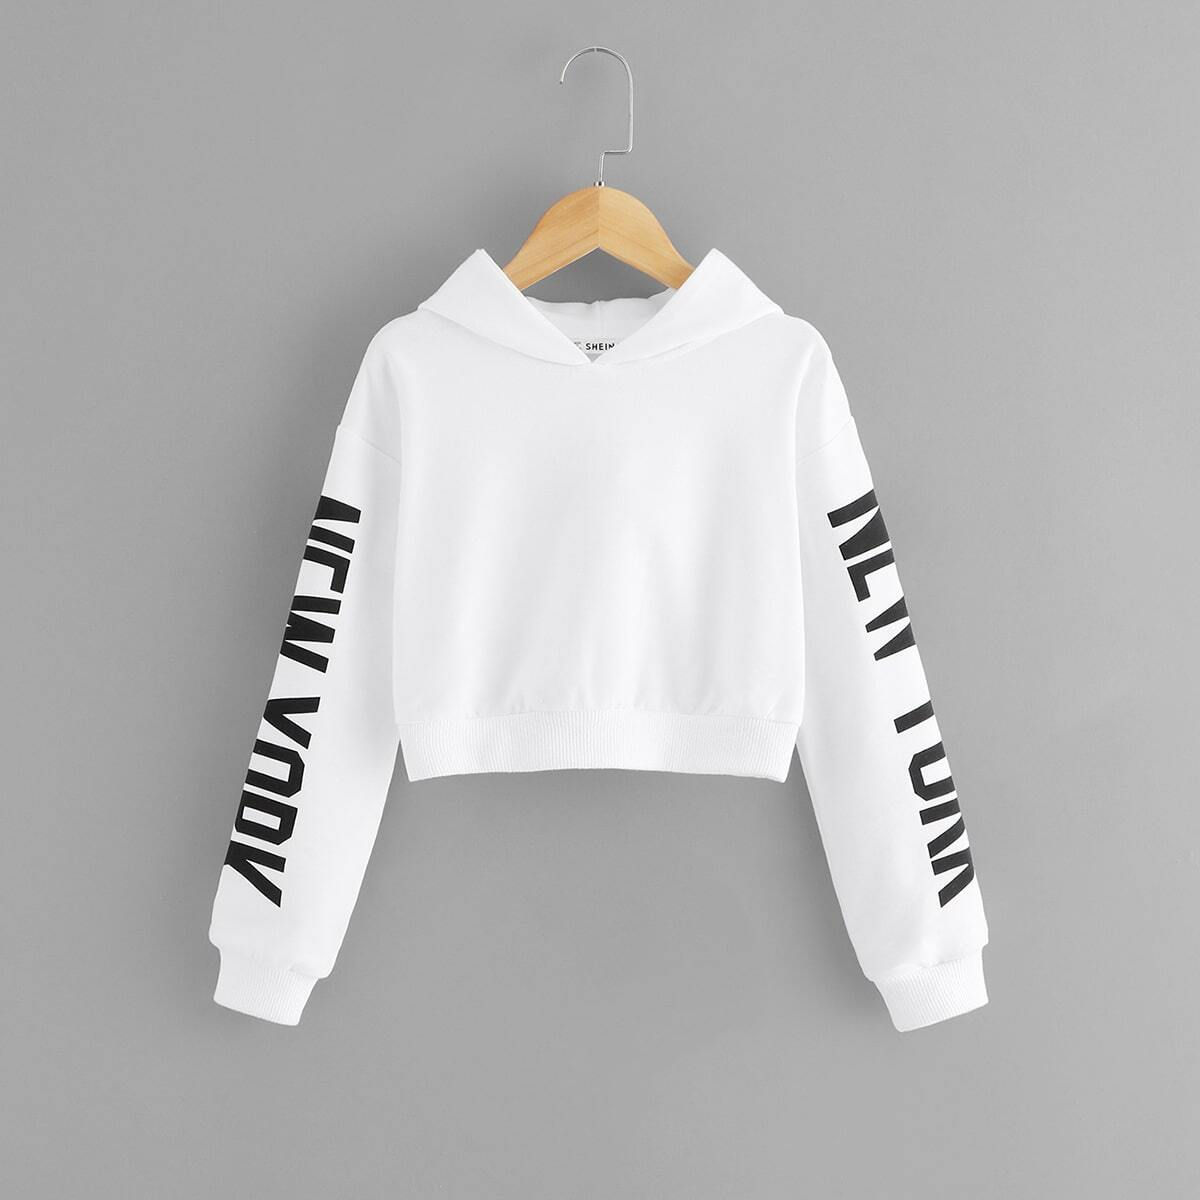 SHEIN coupon: Girls Letter Graphic Sleeve Hoodie